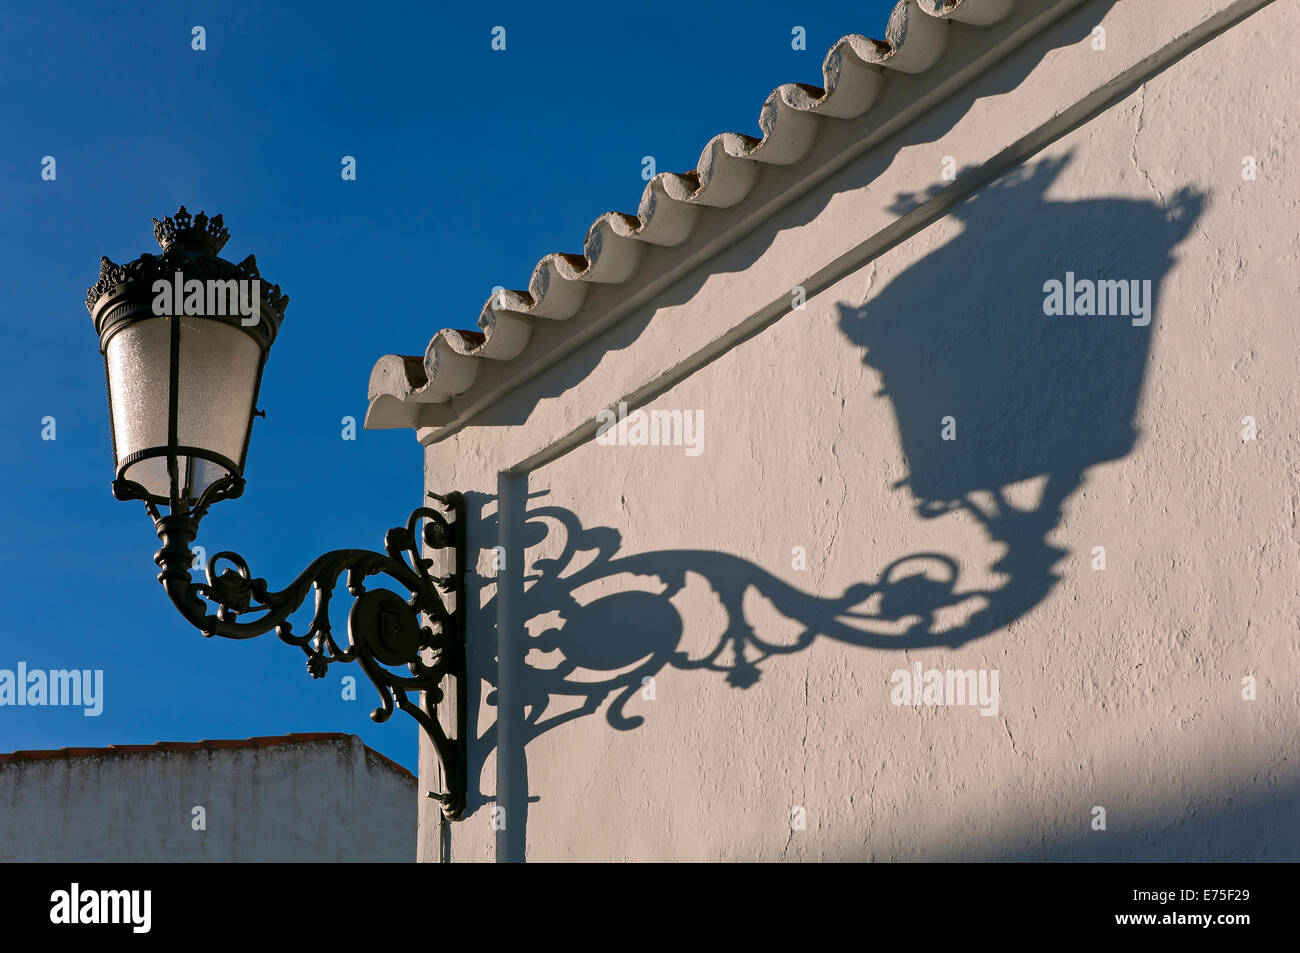 Streetlight and shadow, Alosno, Huelva province, Region of Andalusia, Spain, Europe - Stock Image